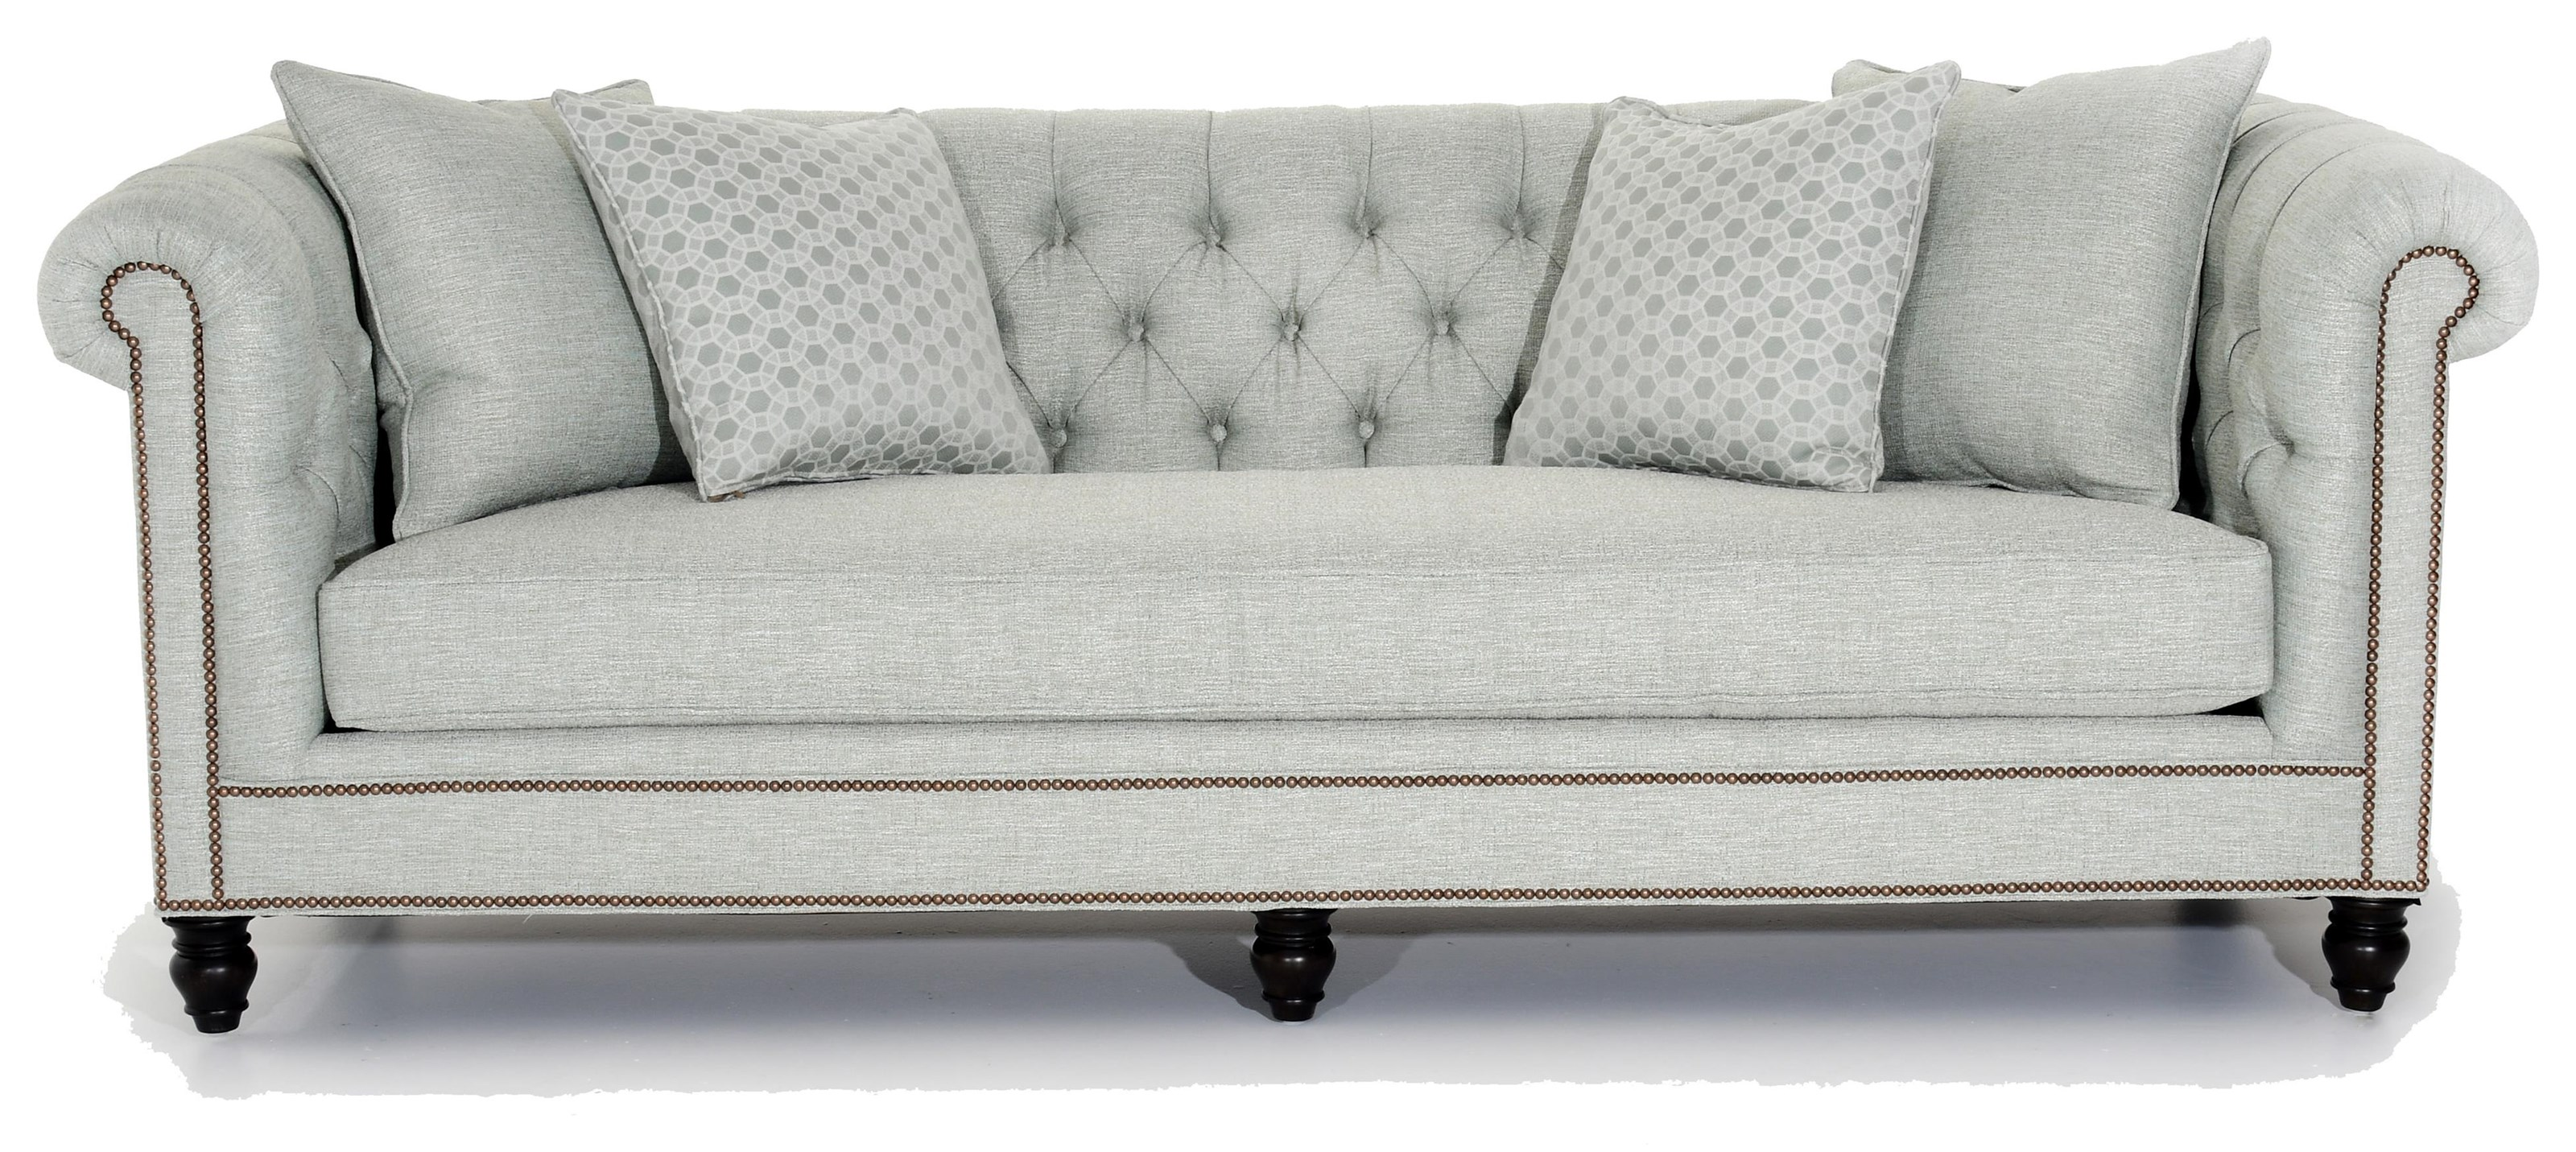 Tommy Bahama Home Island Traditions Manchester Sofa - Item Number: 7994-33 2218-21